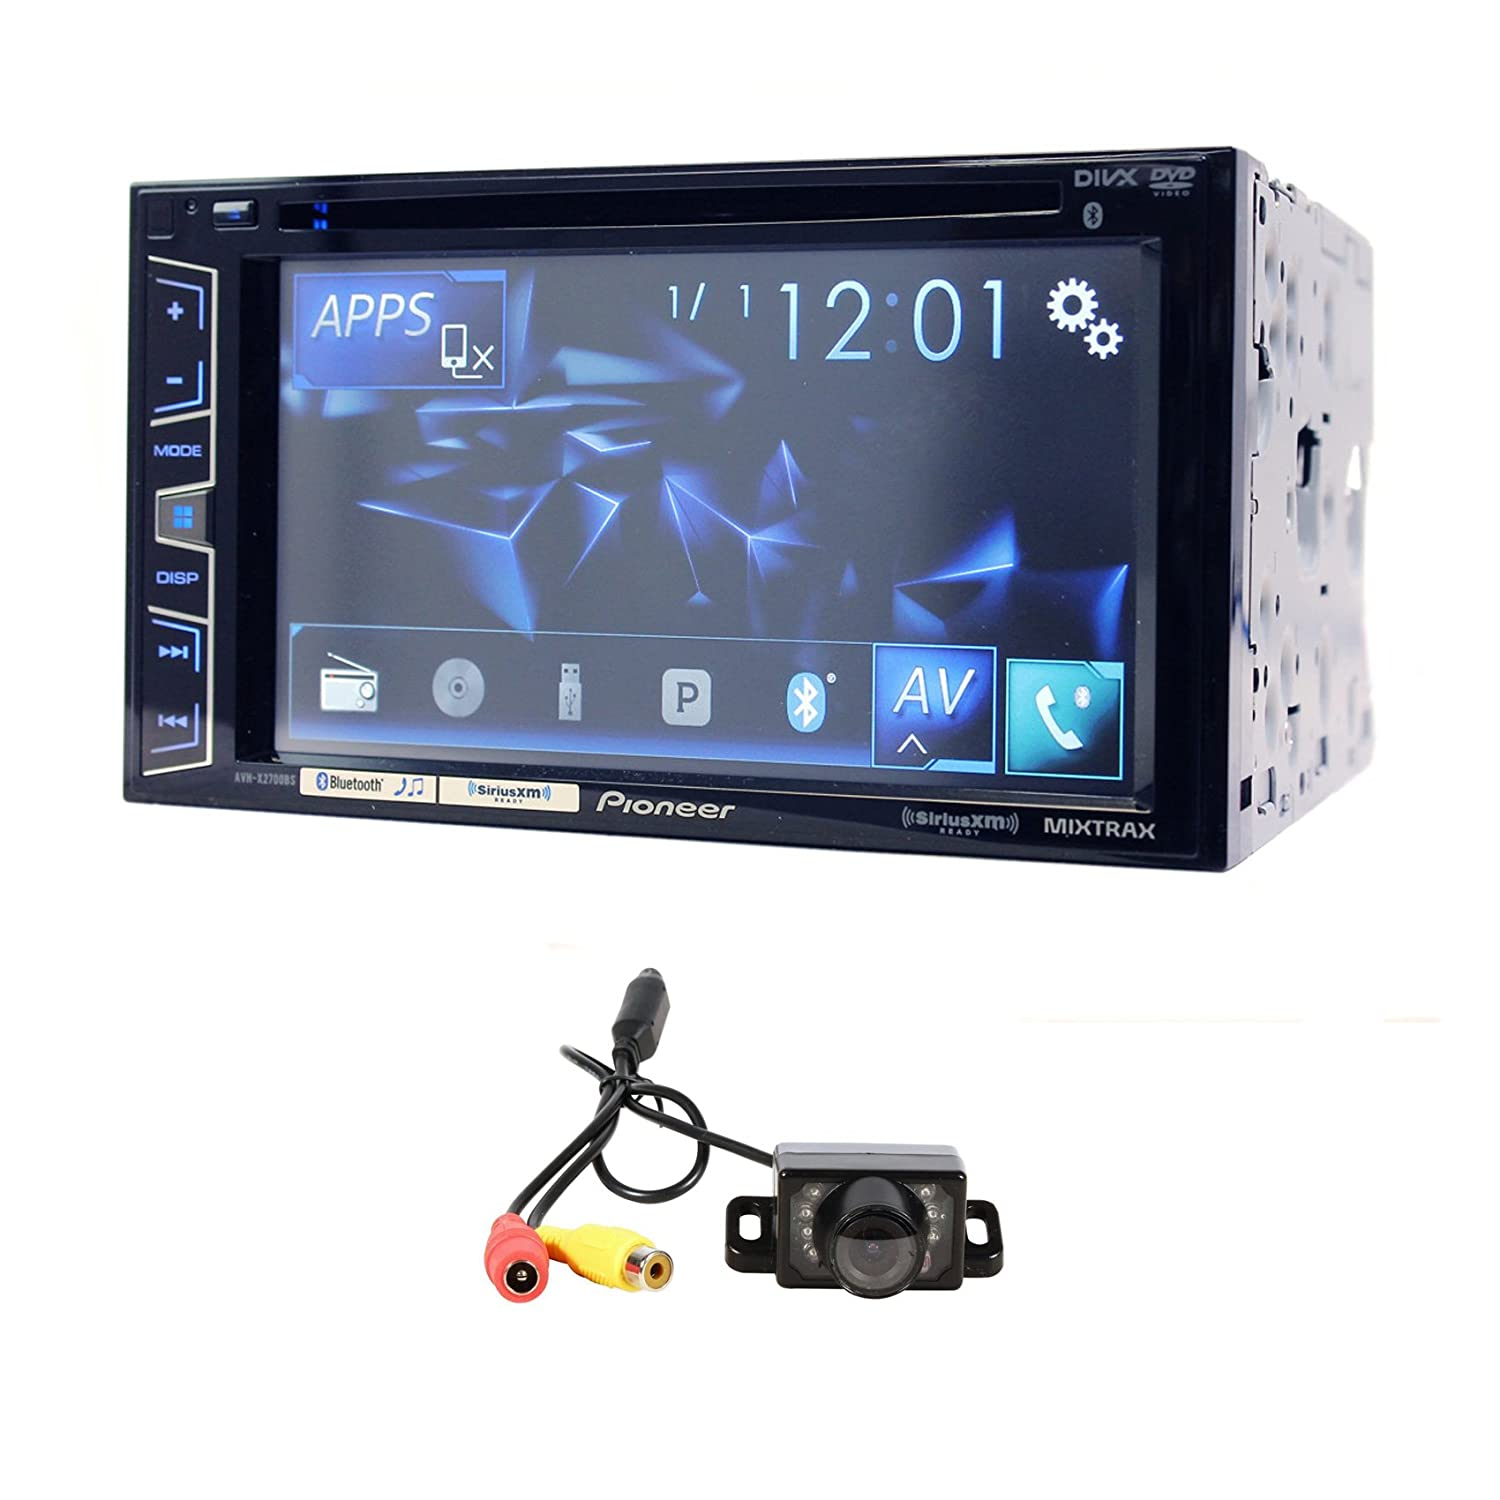 Wiring Diagrams For Double Din Car Dvd Player additionally Pioneer Stereo Wiring Diagram Cars Pinterest moreover Saab Wiring Diagram 2004 Book moreover Kenwood Model Kdc Wiring Diagram additionally Kenwood Ddx419 Wiring Diagram Model. on 539939442810658247